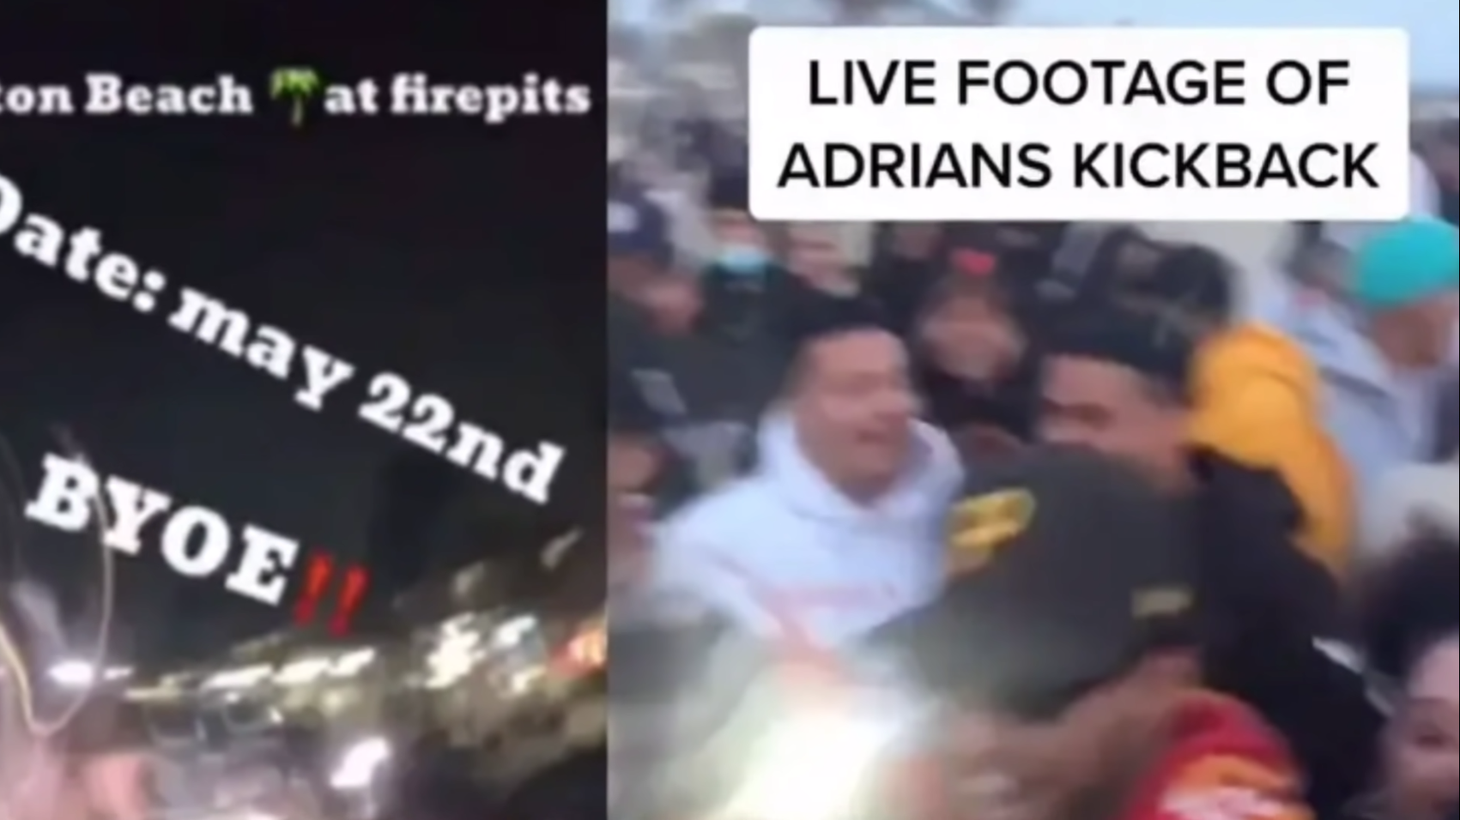 """""""Adrian's kickback,"""" a party that was promoted on TikTok, quickly devolved into mayhem in Huntington Beach on May 22, 2021."""